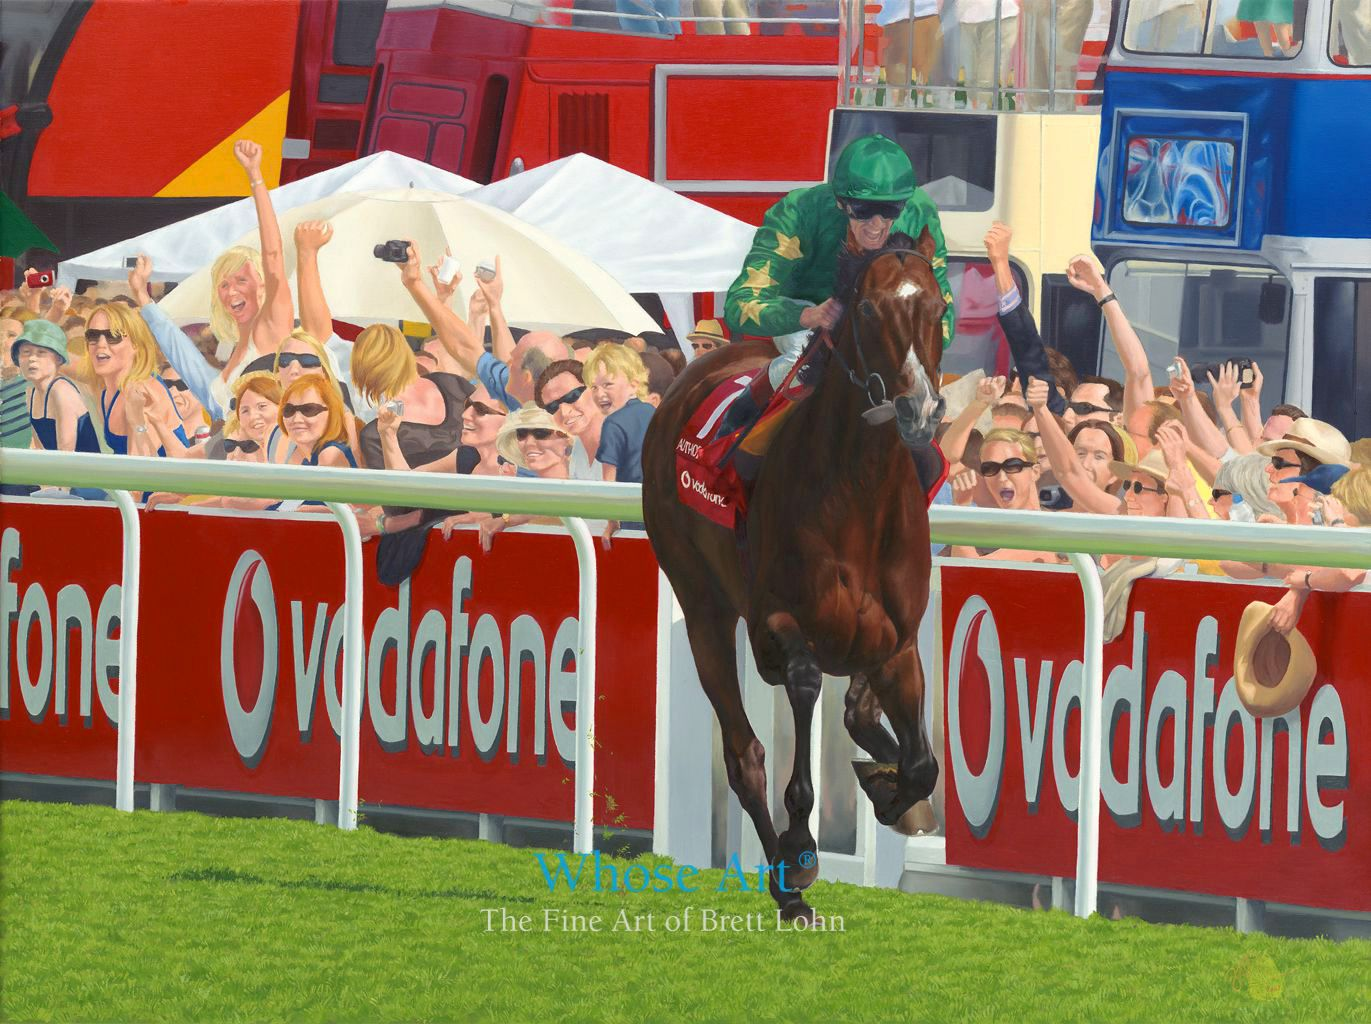 Epsom Derby Oil painting of Frankie Dettori winning the Derby on Authorized. The crowd cheers behind him as Dettori wins